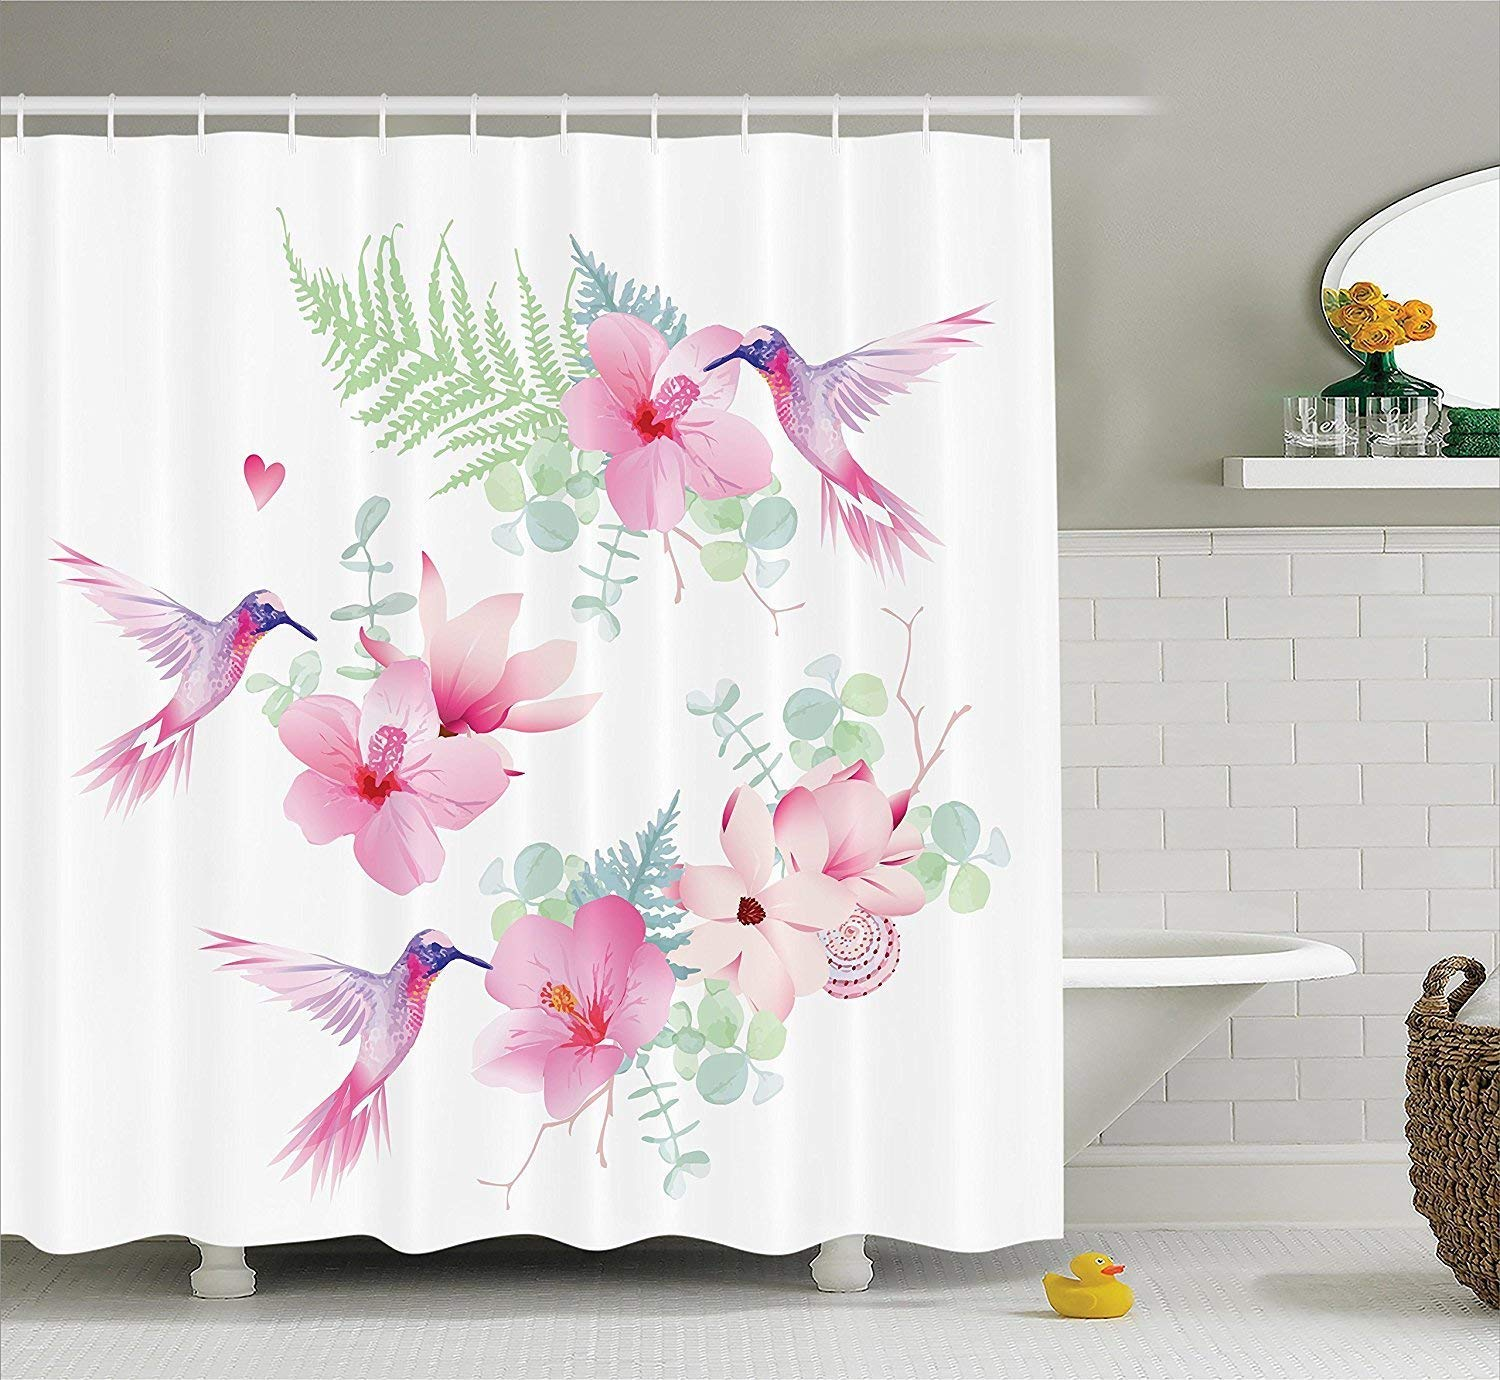 werert Floral Shower Curtain Curtain Shower Set Hummingbirds Decor, Tropical Flowers with Flying Hummingbirds Wild Nature Branches Blooms,with Hooks, White rosado Purple 72 X 72 9b7aee